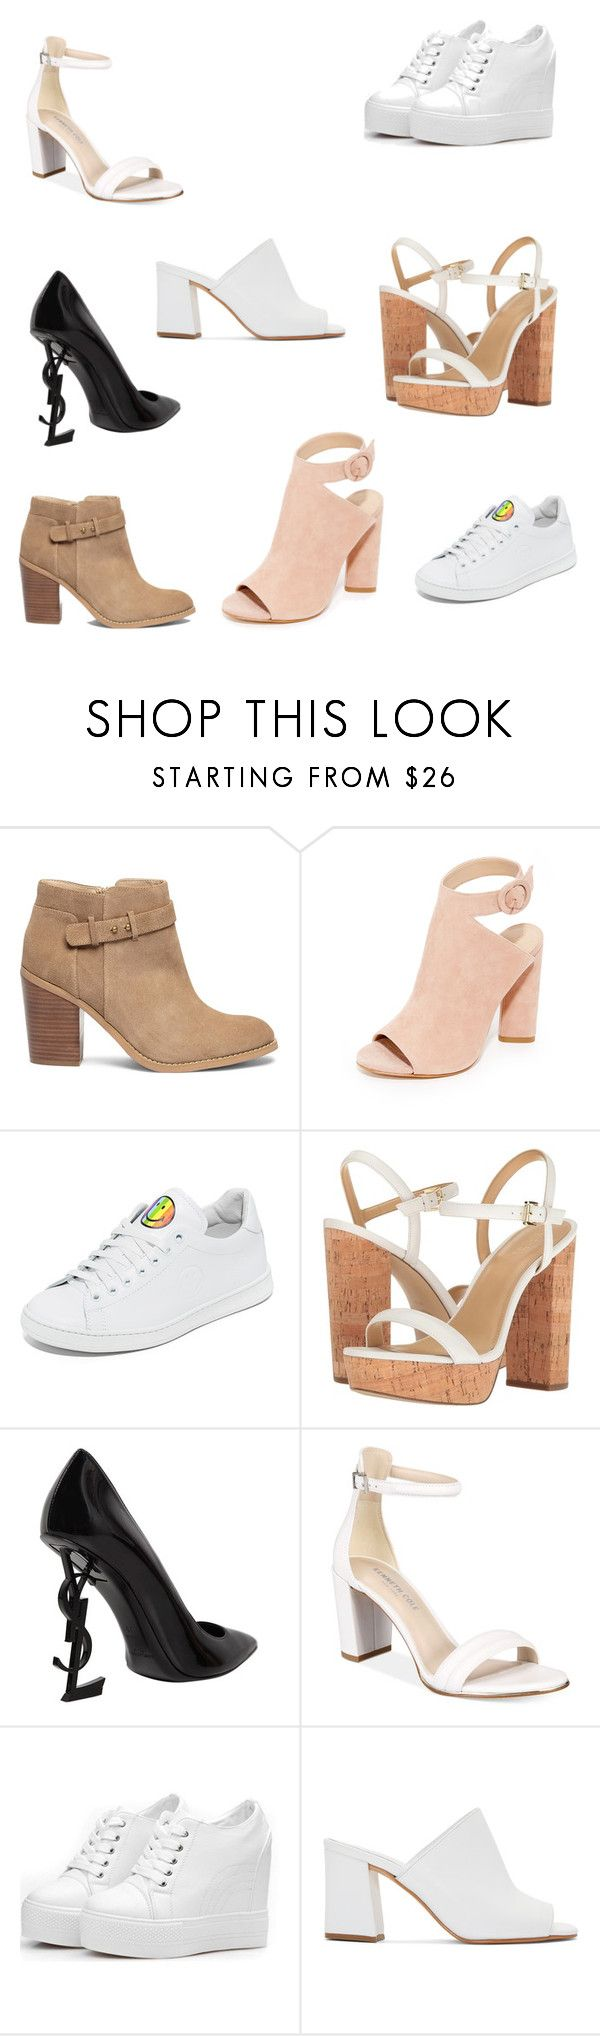 """Shoes 62"" by audjvoss ❤ liked on Polyvore featuring Sole Society, Kendall + Kylie, Joshua's, MICHAEL Michael Kors, Yves Saint Laurent, Kenneth Cole and Maryam Nassir Zadeh"